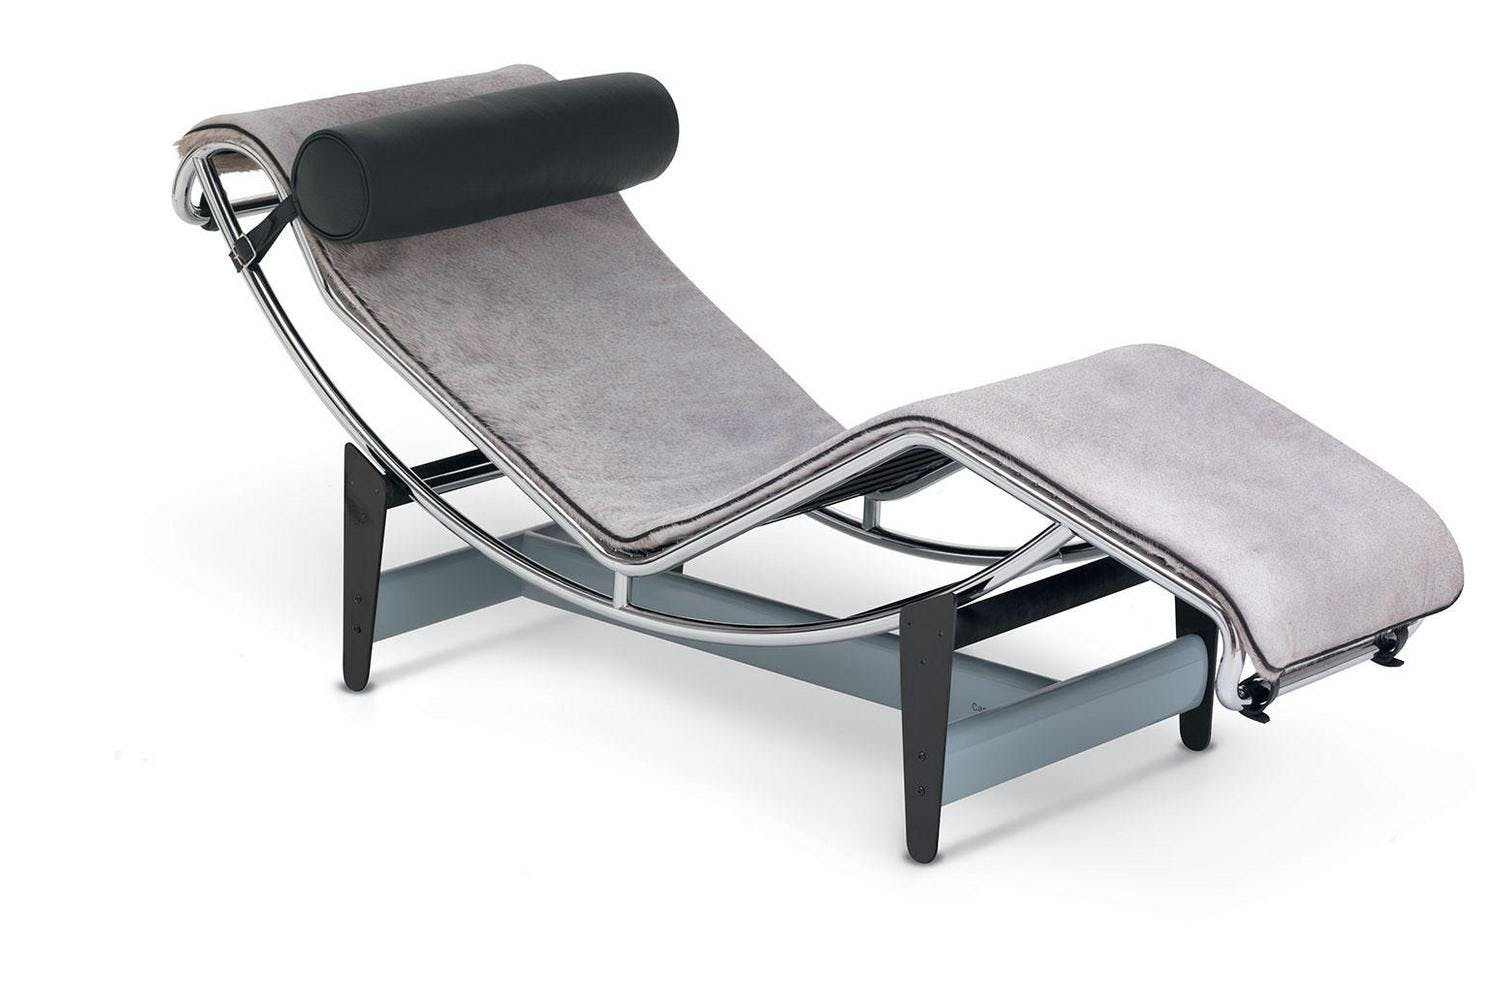 LC4 Villa Church Chaise Longue By Le Corbusier Pierre Jeanneret Charlotte Perriand For Cassina